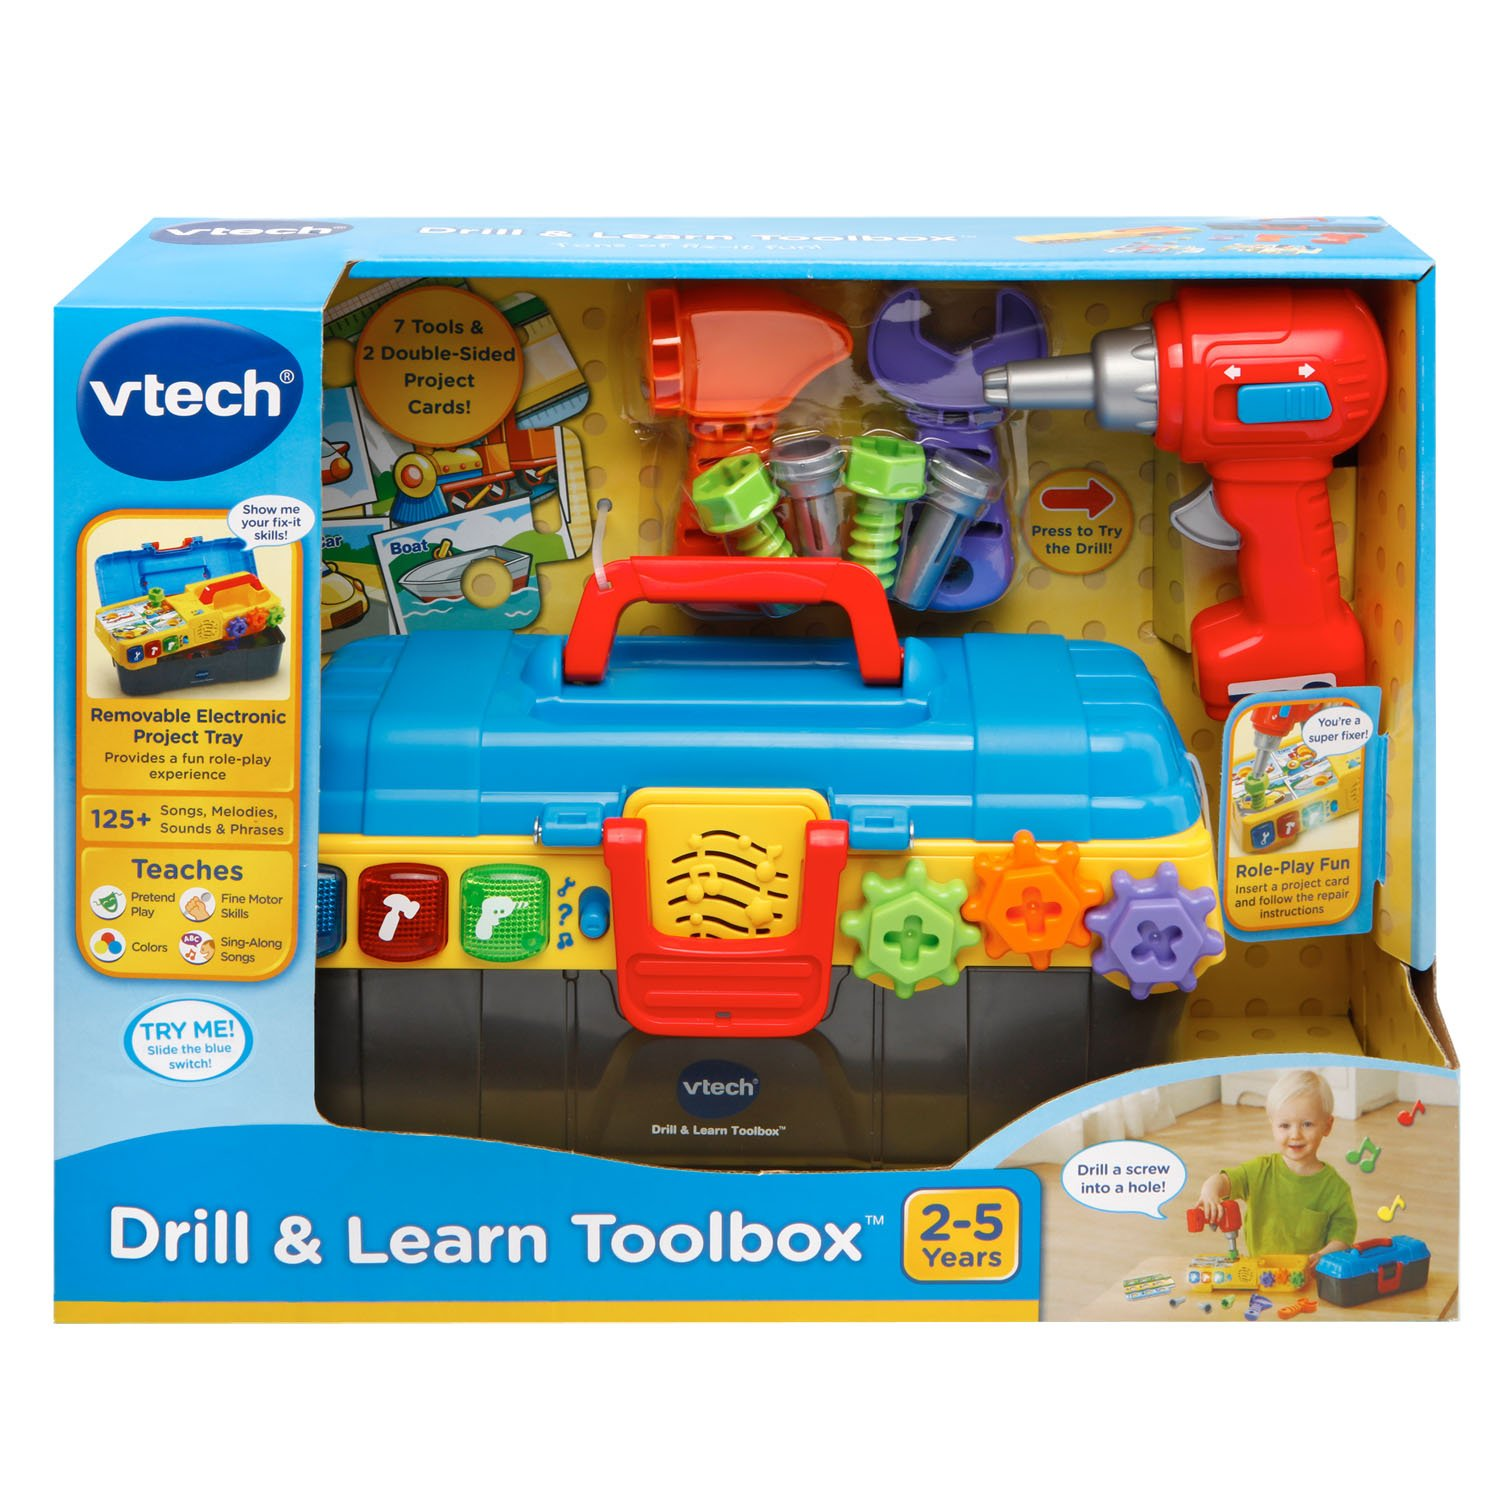 VTech Drill and Learn Toolbox Amazon Toys & Games